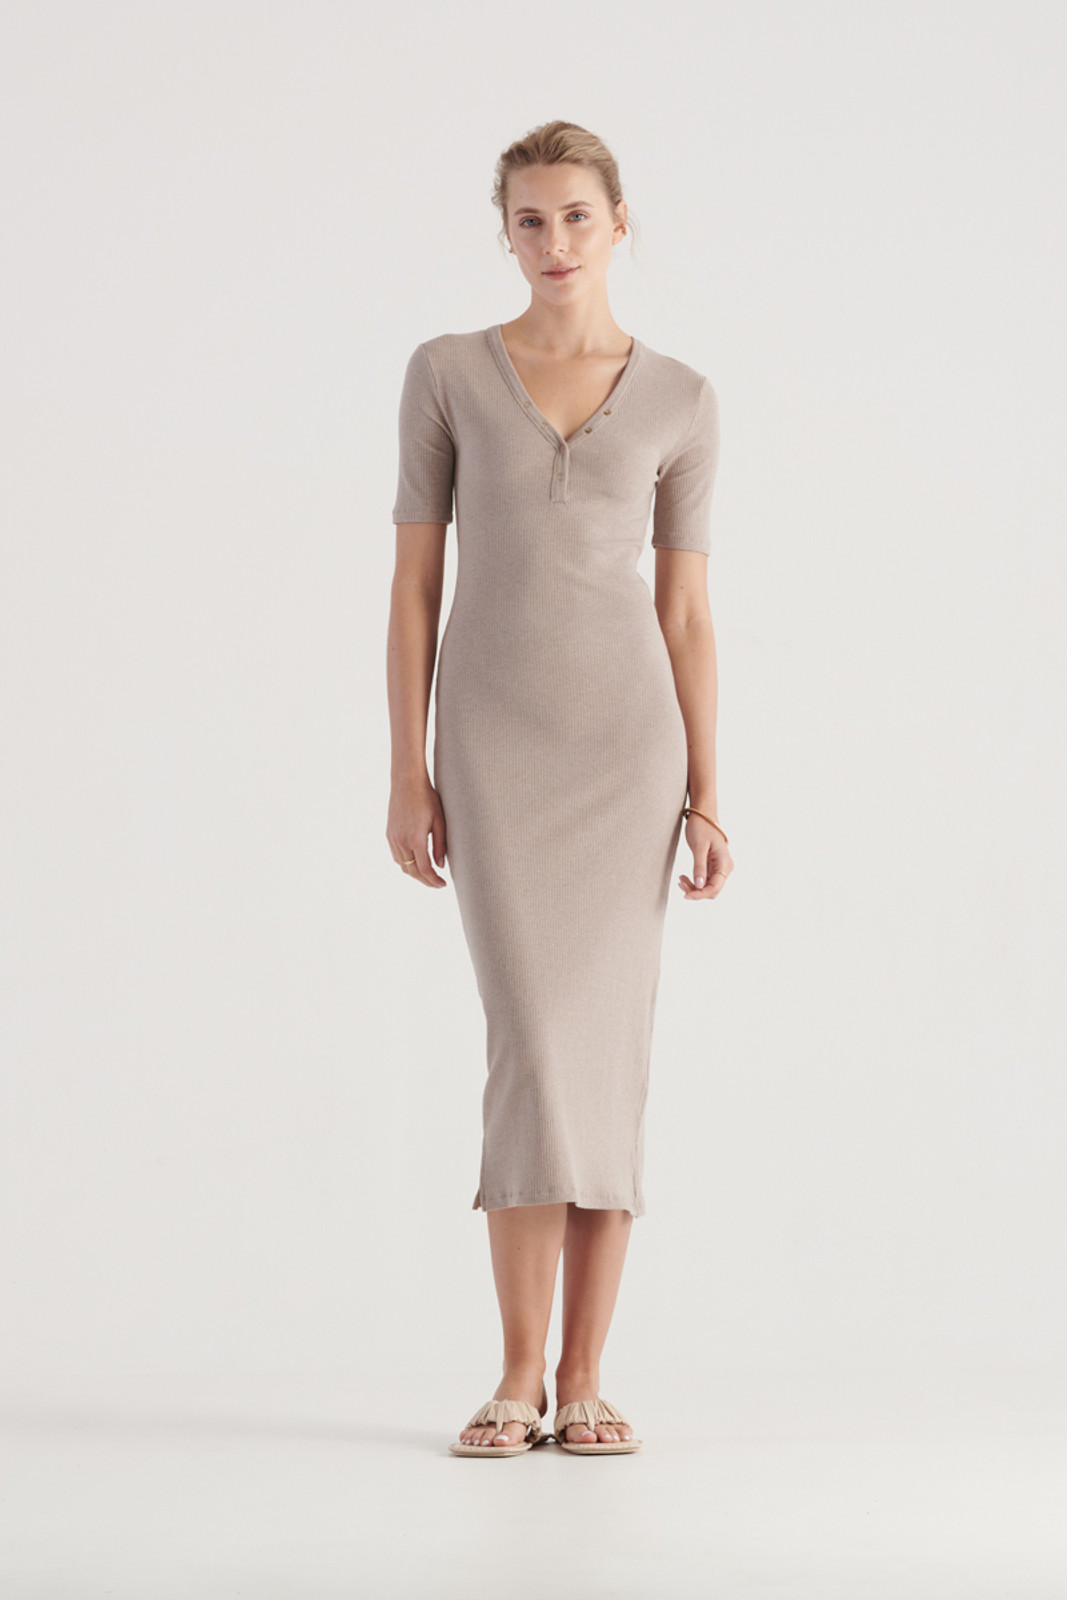 Elka Collective WomensHadley Dress Taupe Marle  0